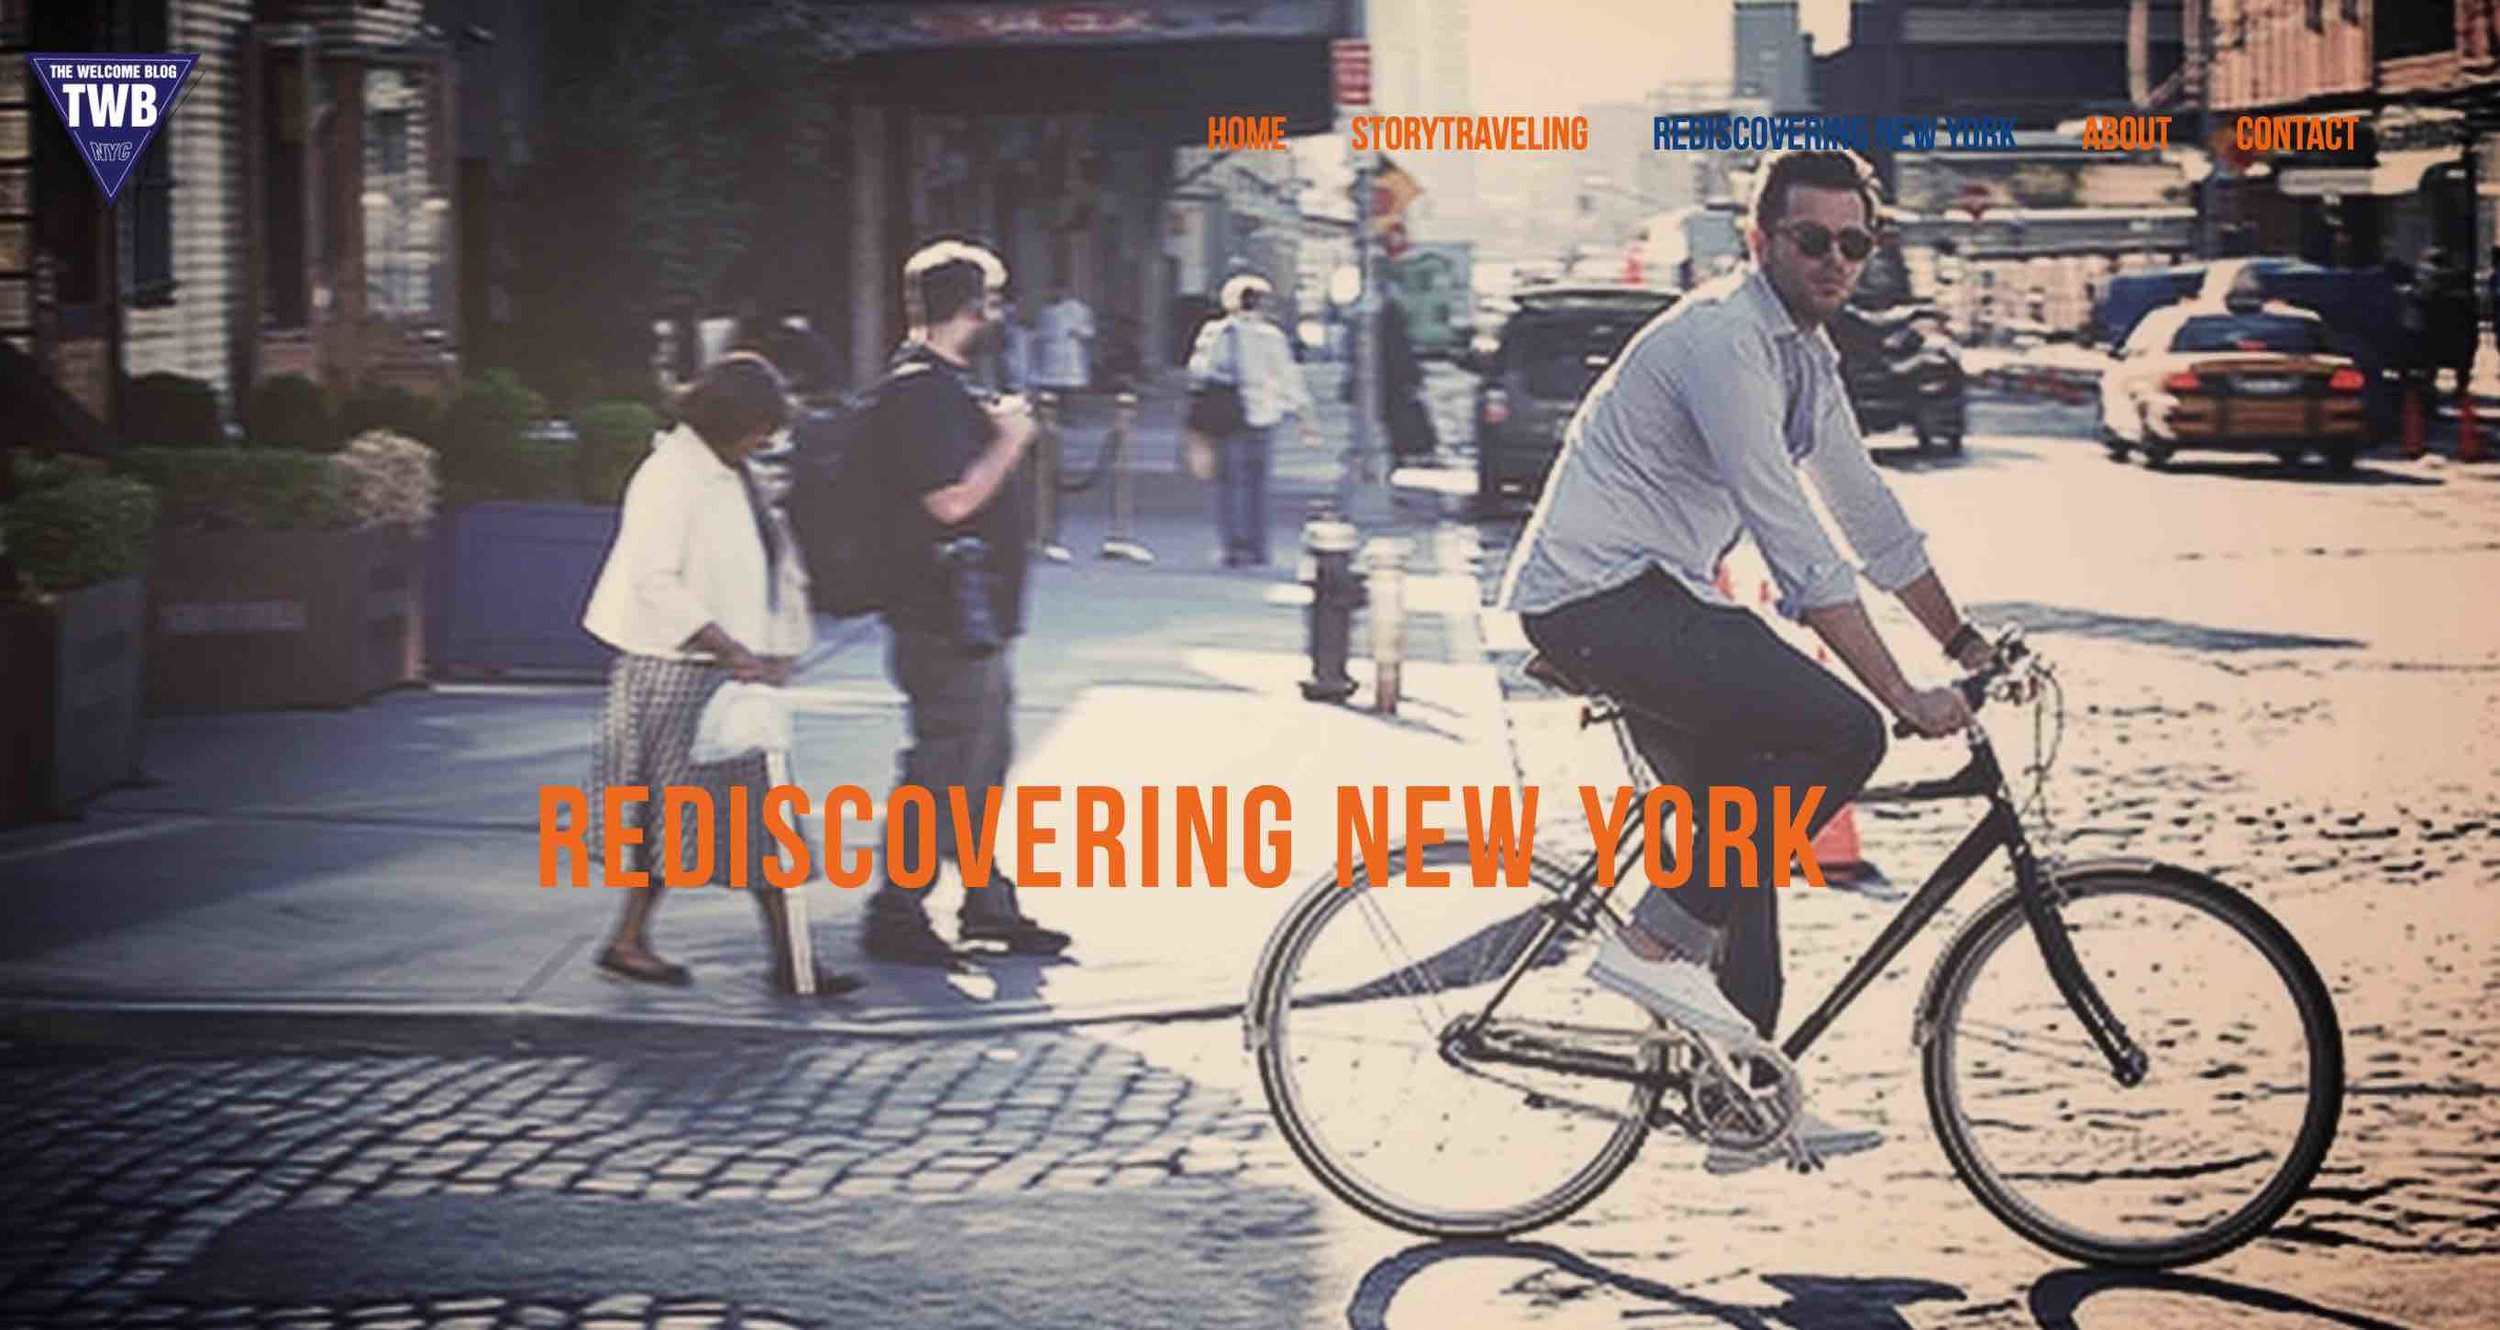 New section on The Welcome Blog:   Rediscovering New York